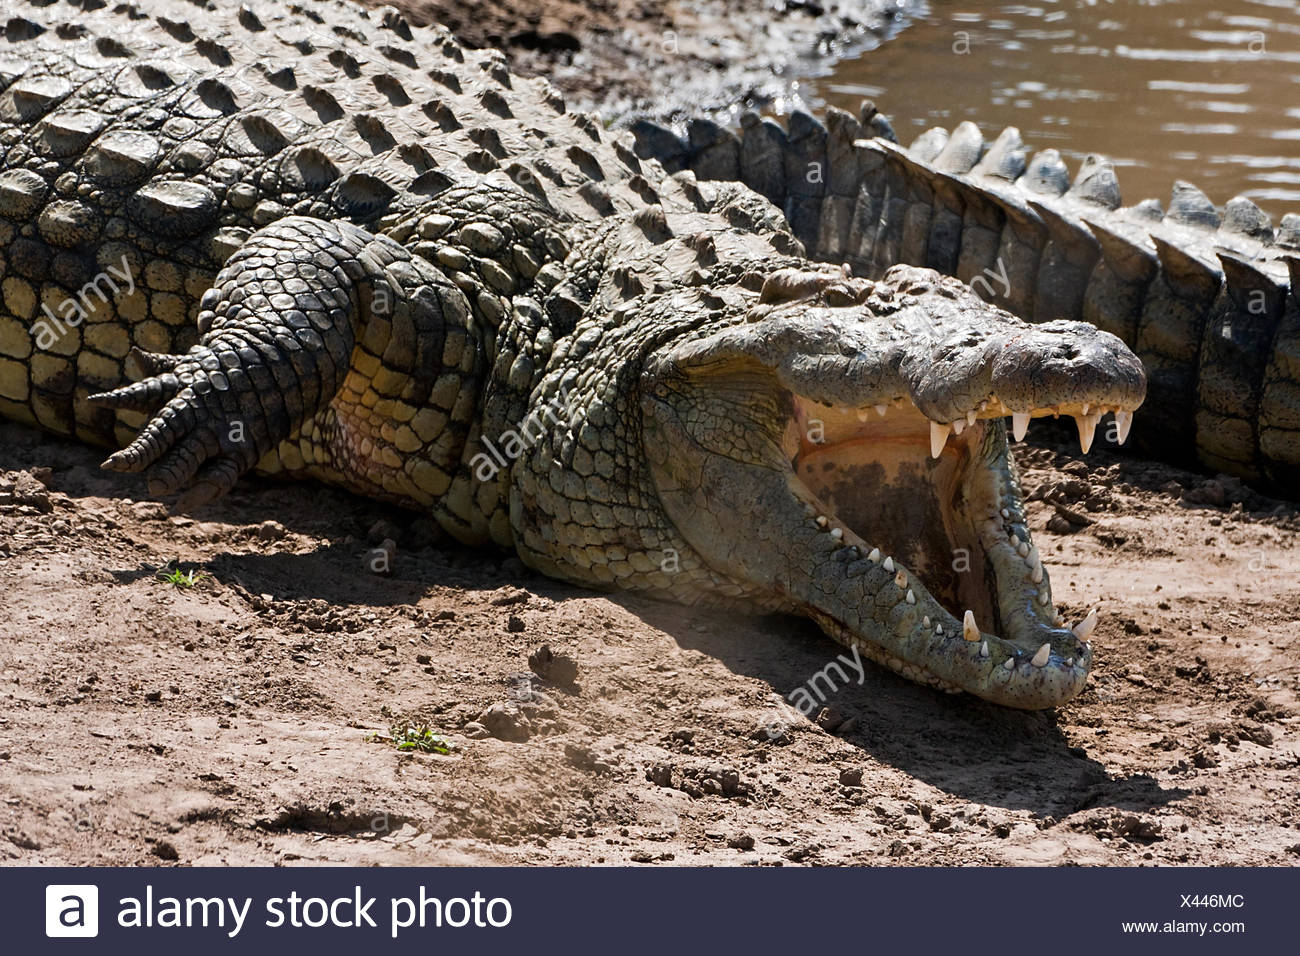 crocodile with open mouth - Stock Image